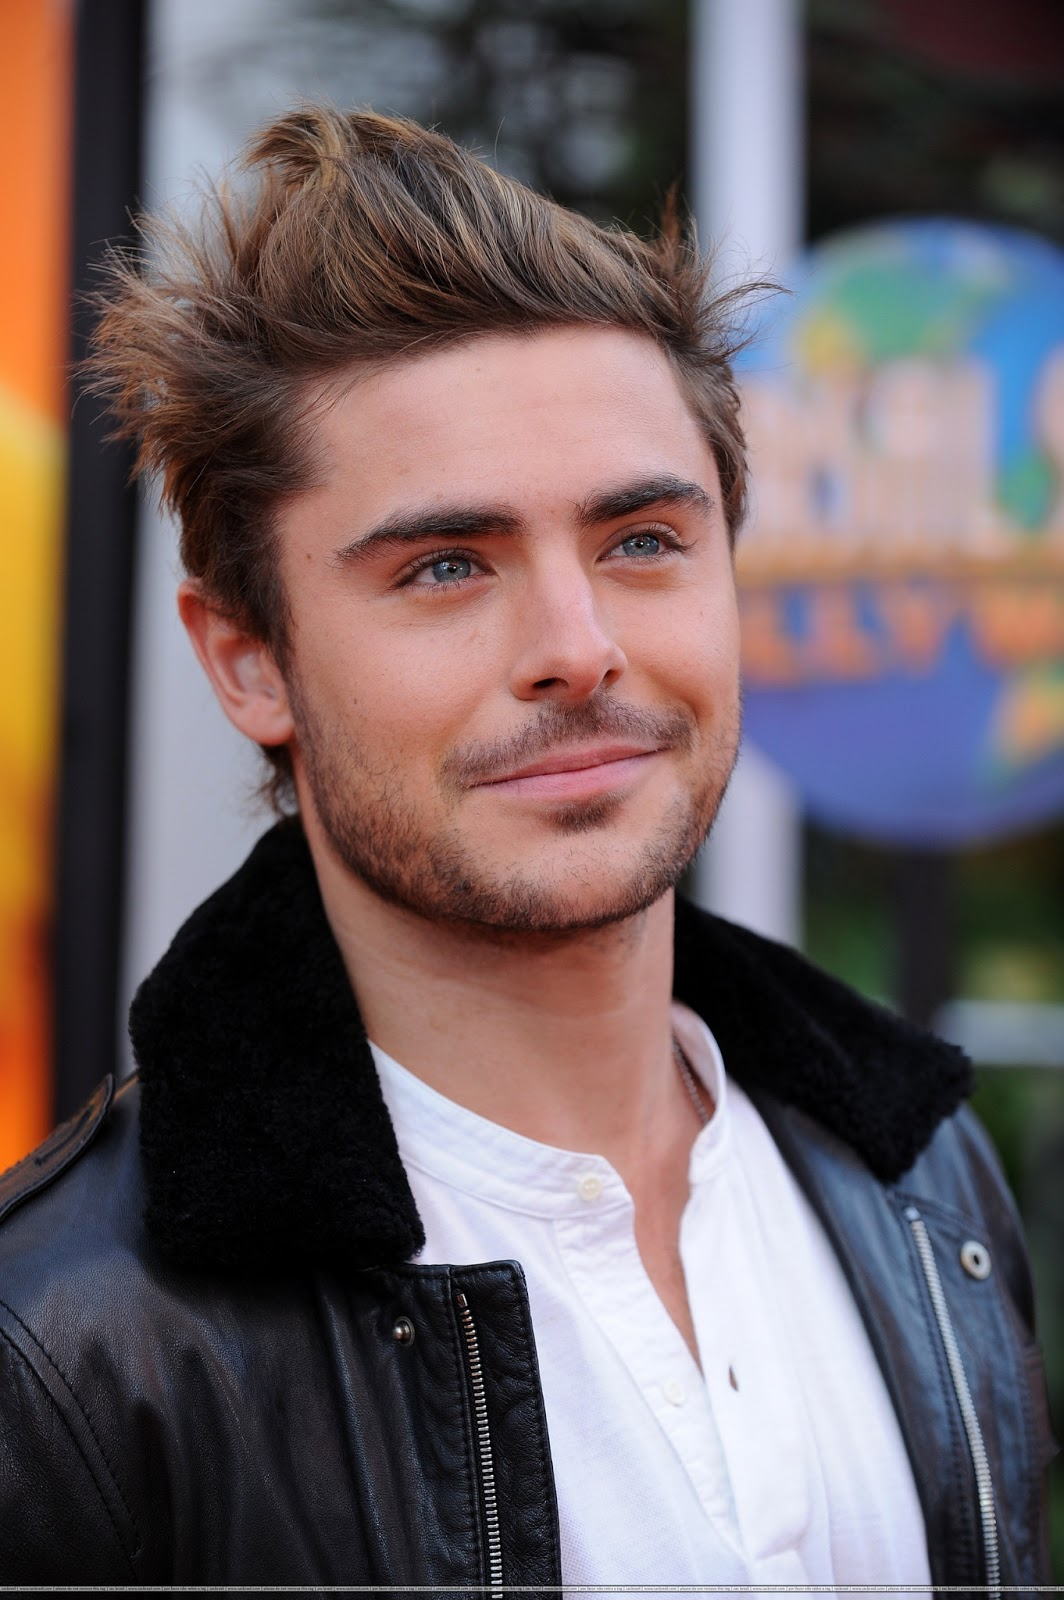 Fall Baby Animal Wallpaper Zac Efron Wallpapers Desktop Wallpapers